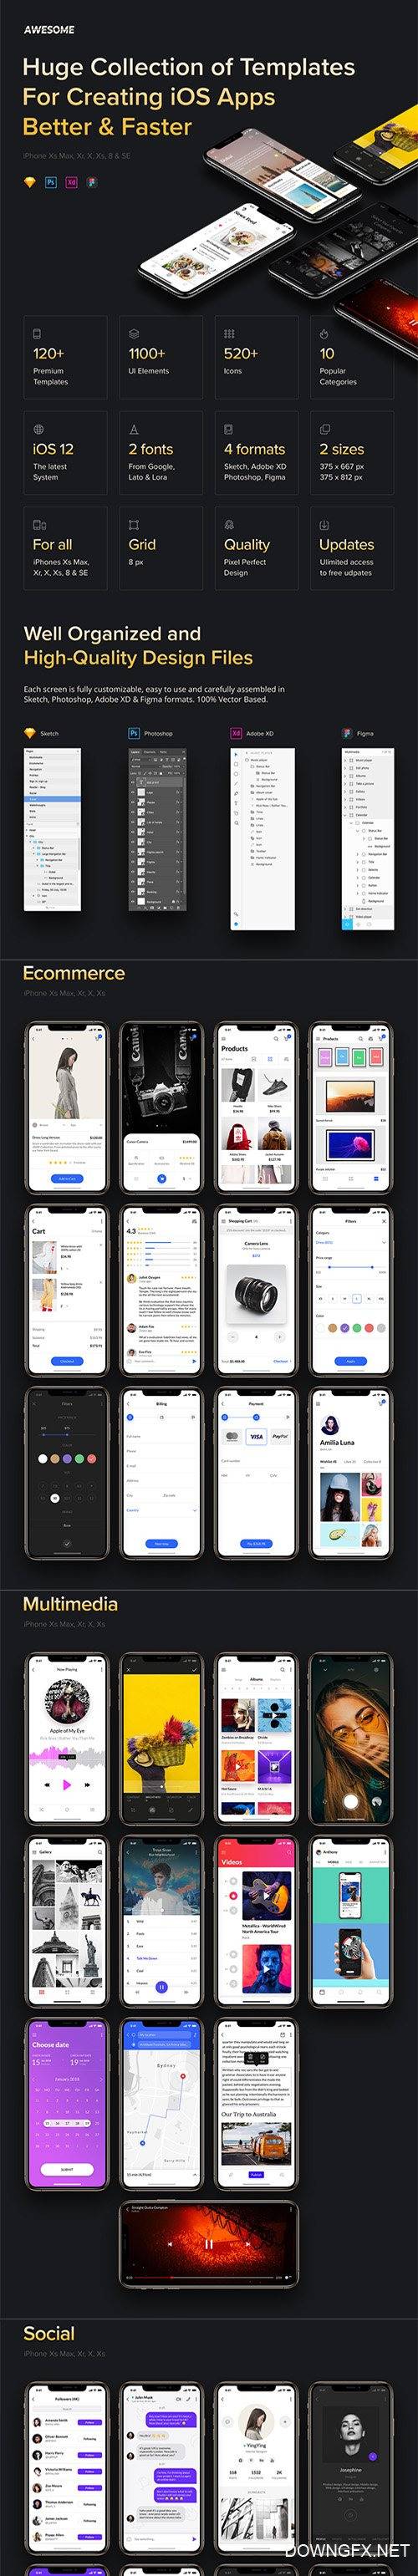 Awesome iOS UI Kit